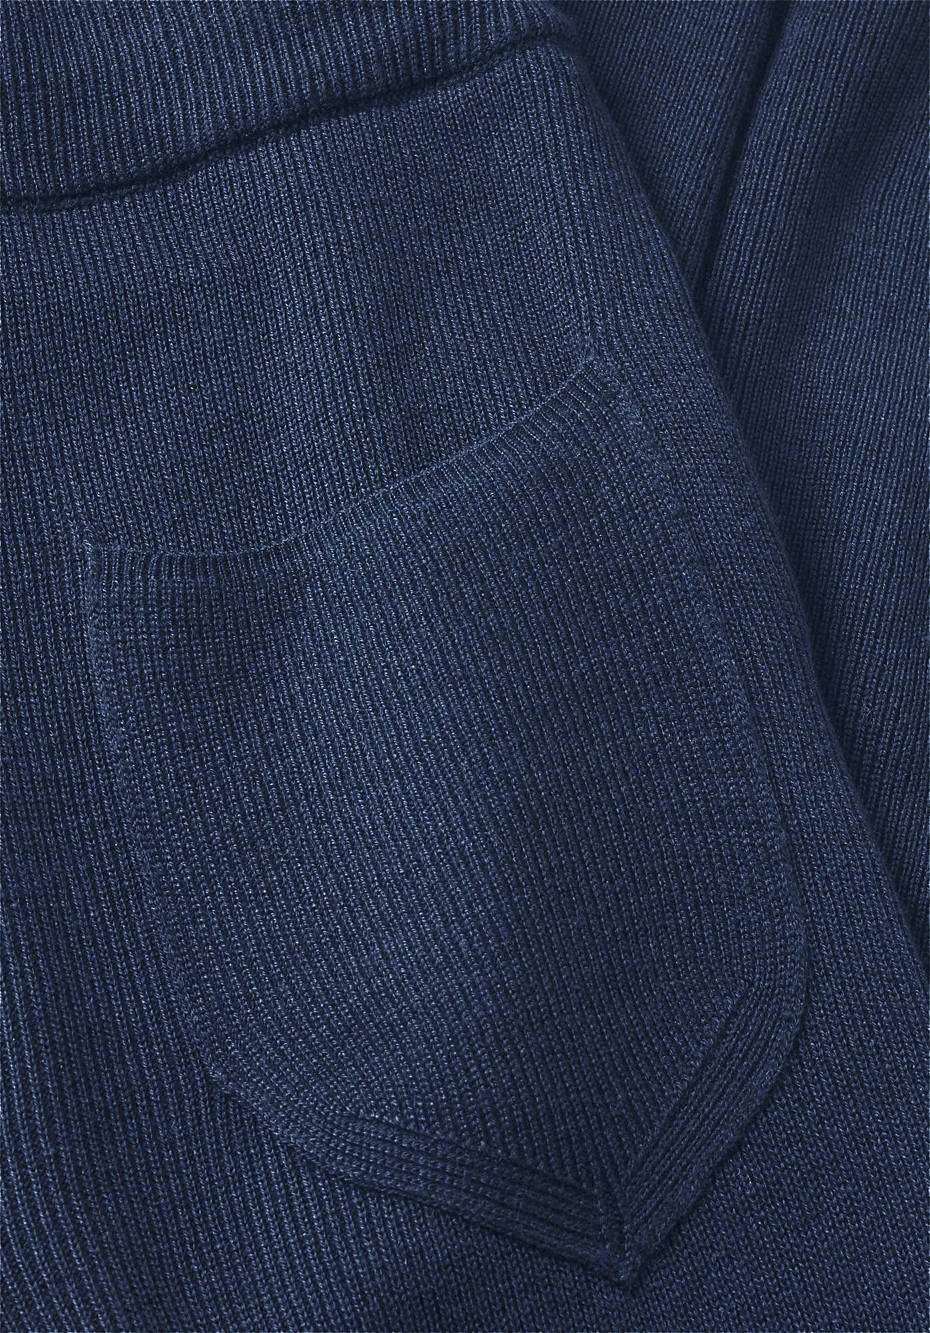 Knitted pants made of organic cotton and organic new wool